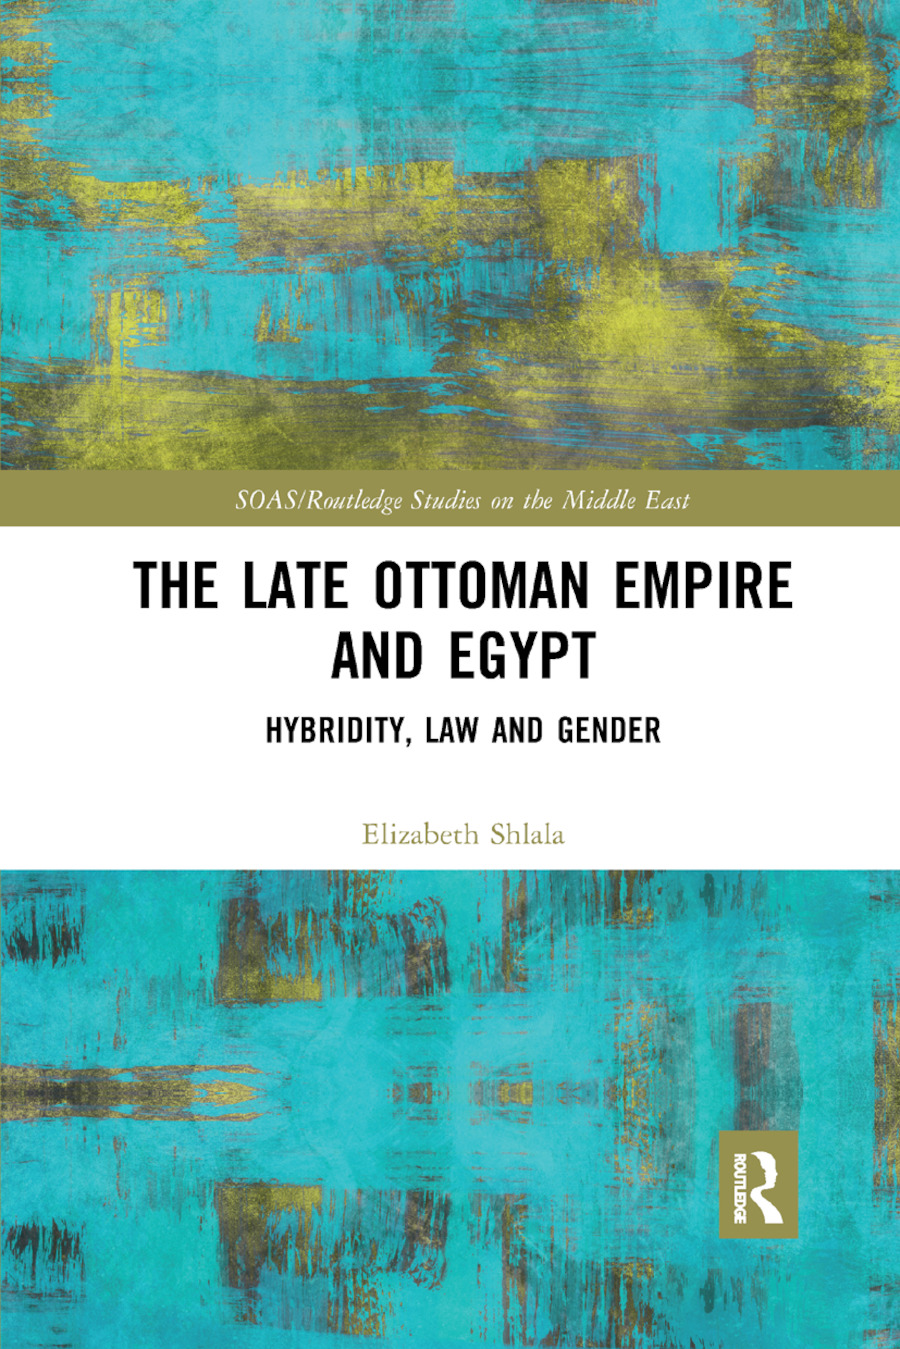 The Late Ottoman Empire and Egypt: Hybridity, Law and Gender book cover